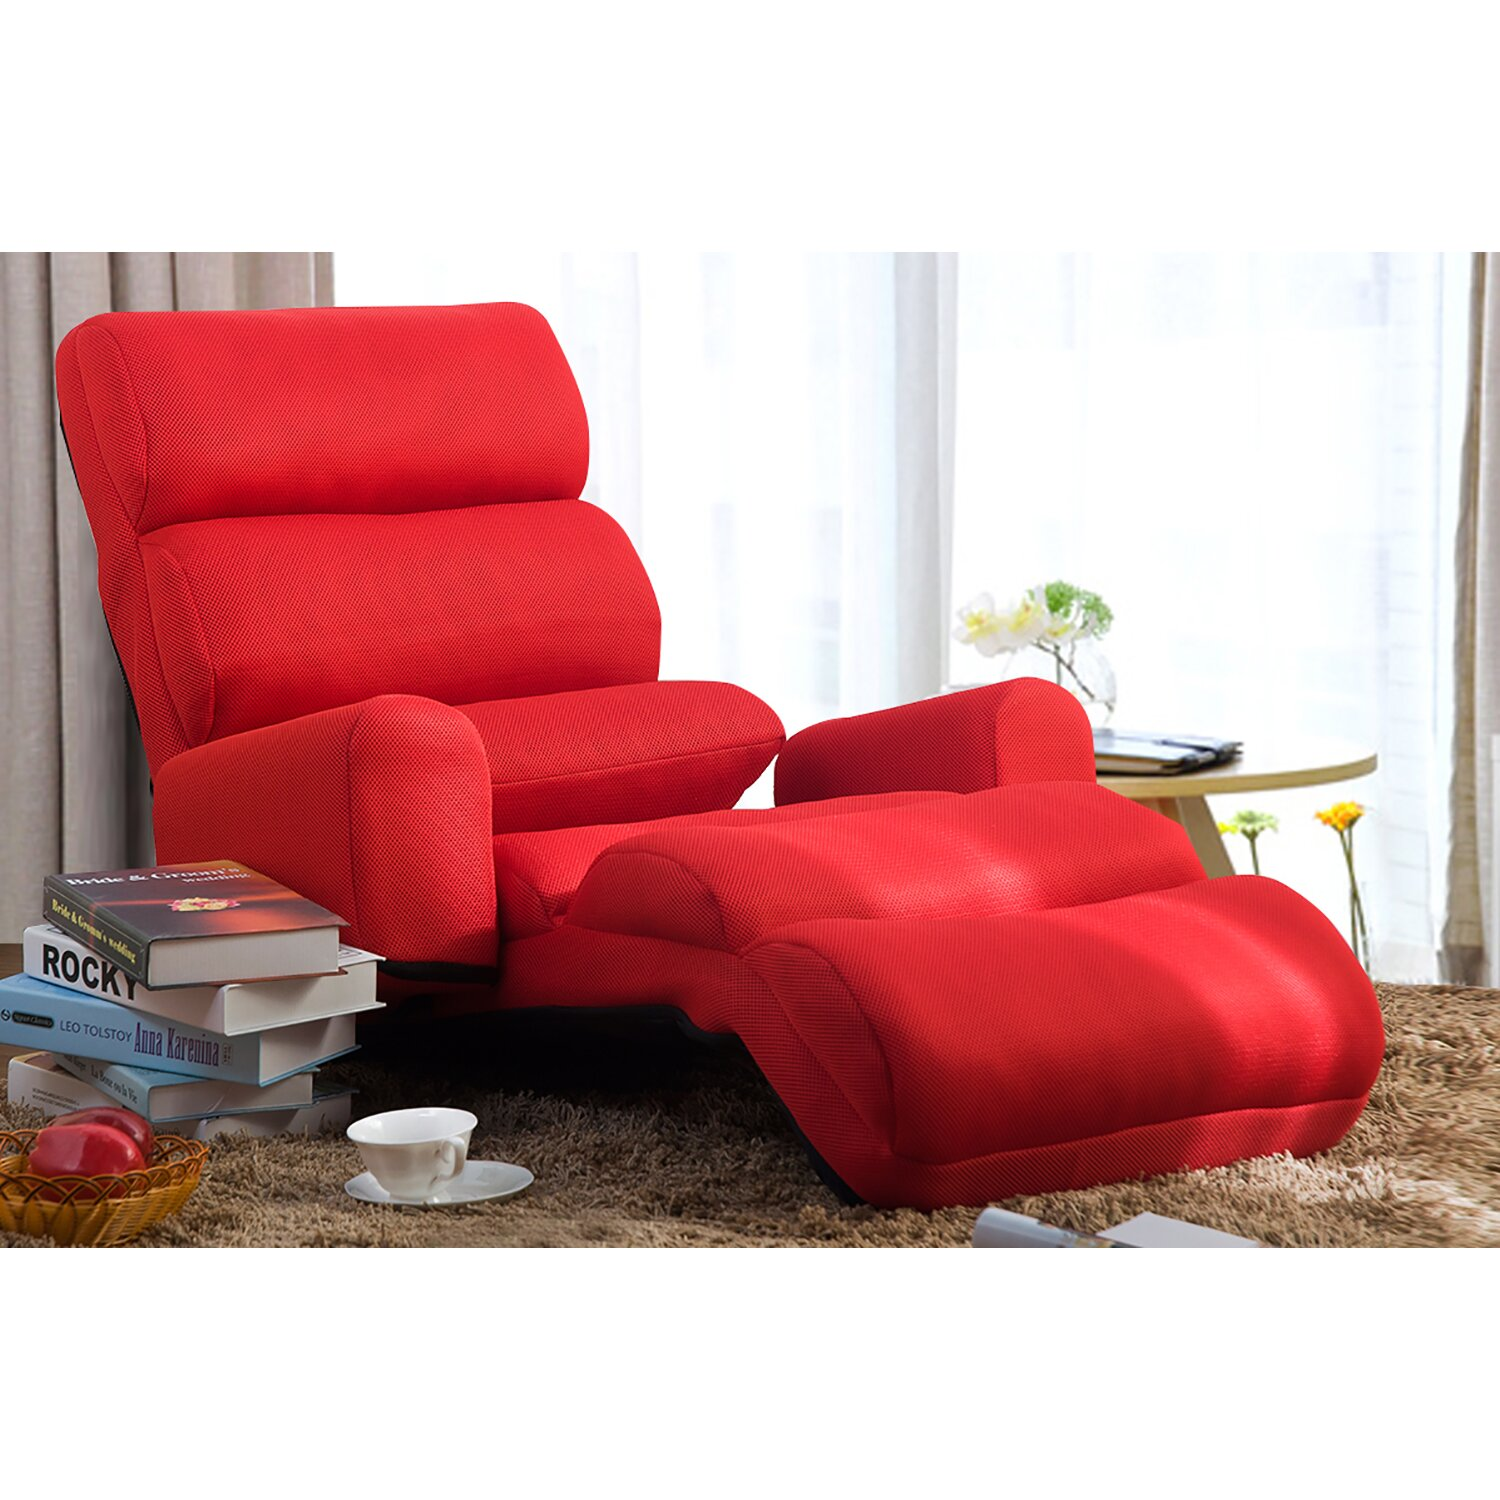 Convertible Ottoman Chair Costco: Merax Convertible Lounge Chair & Reviews